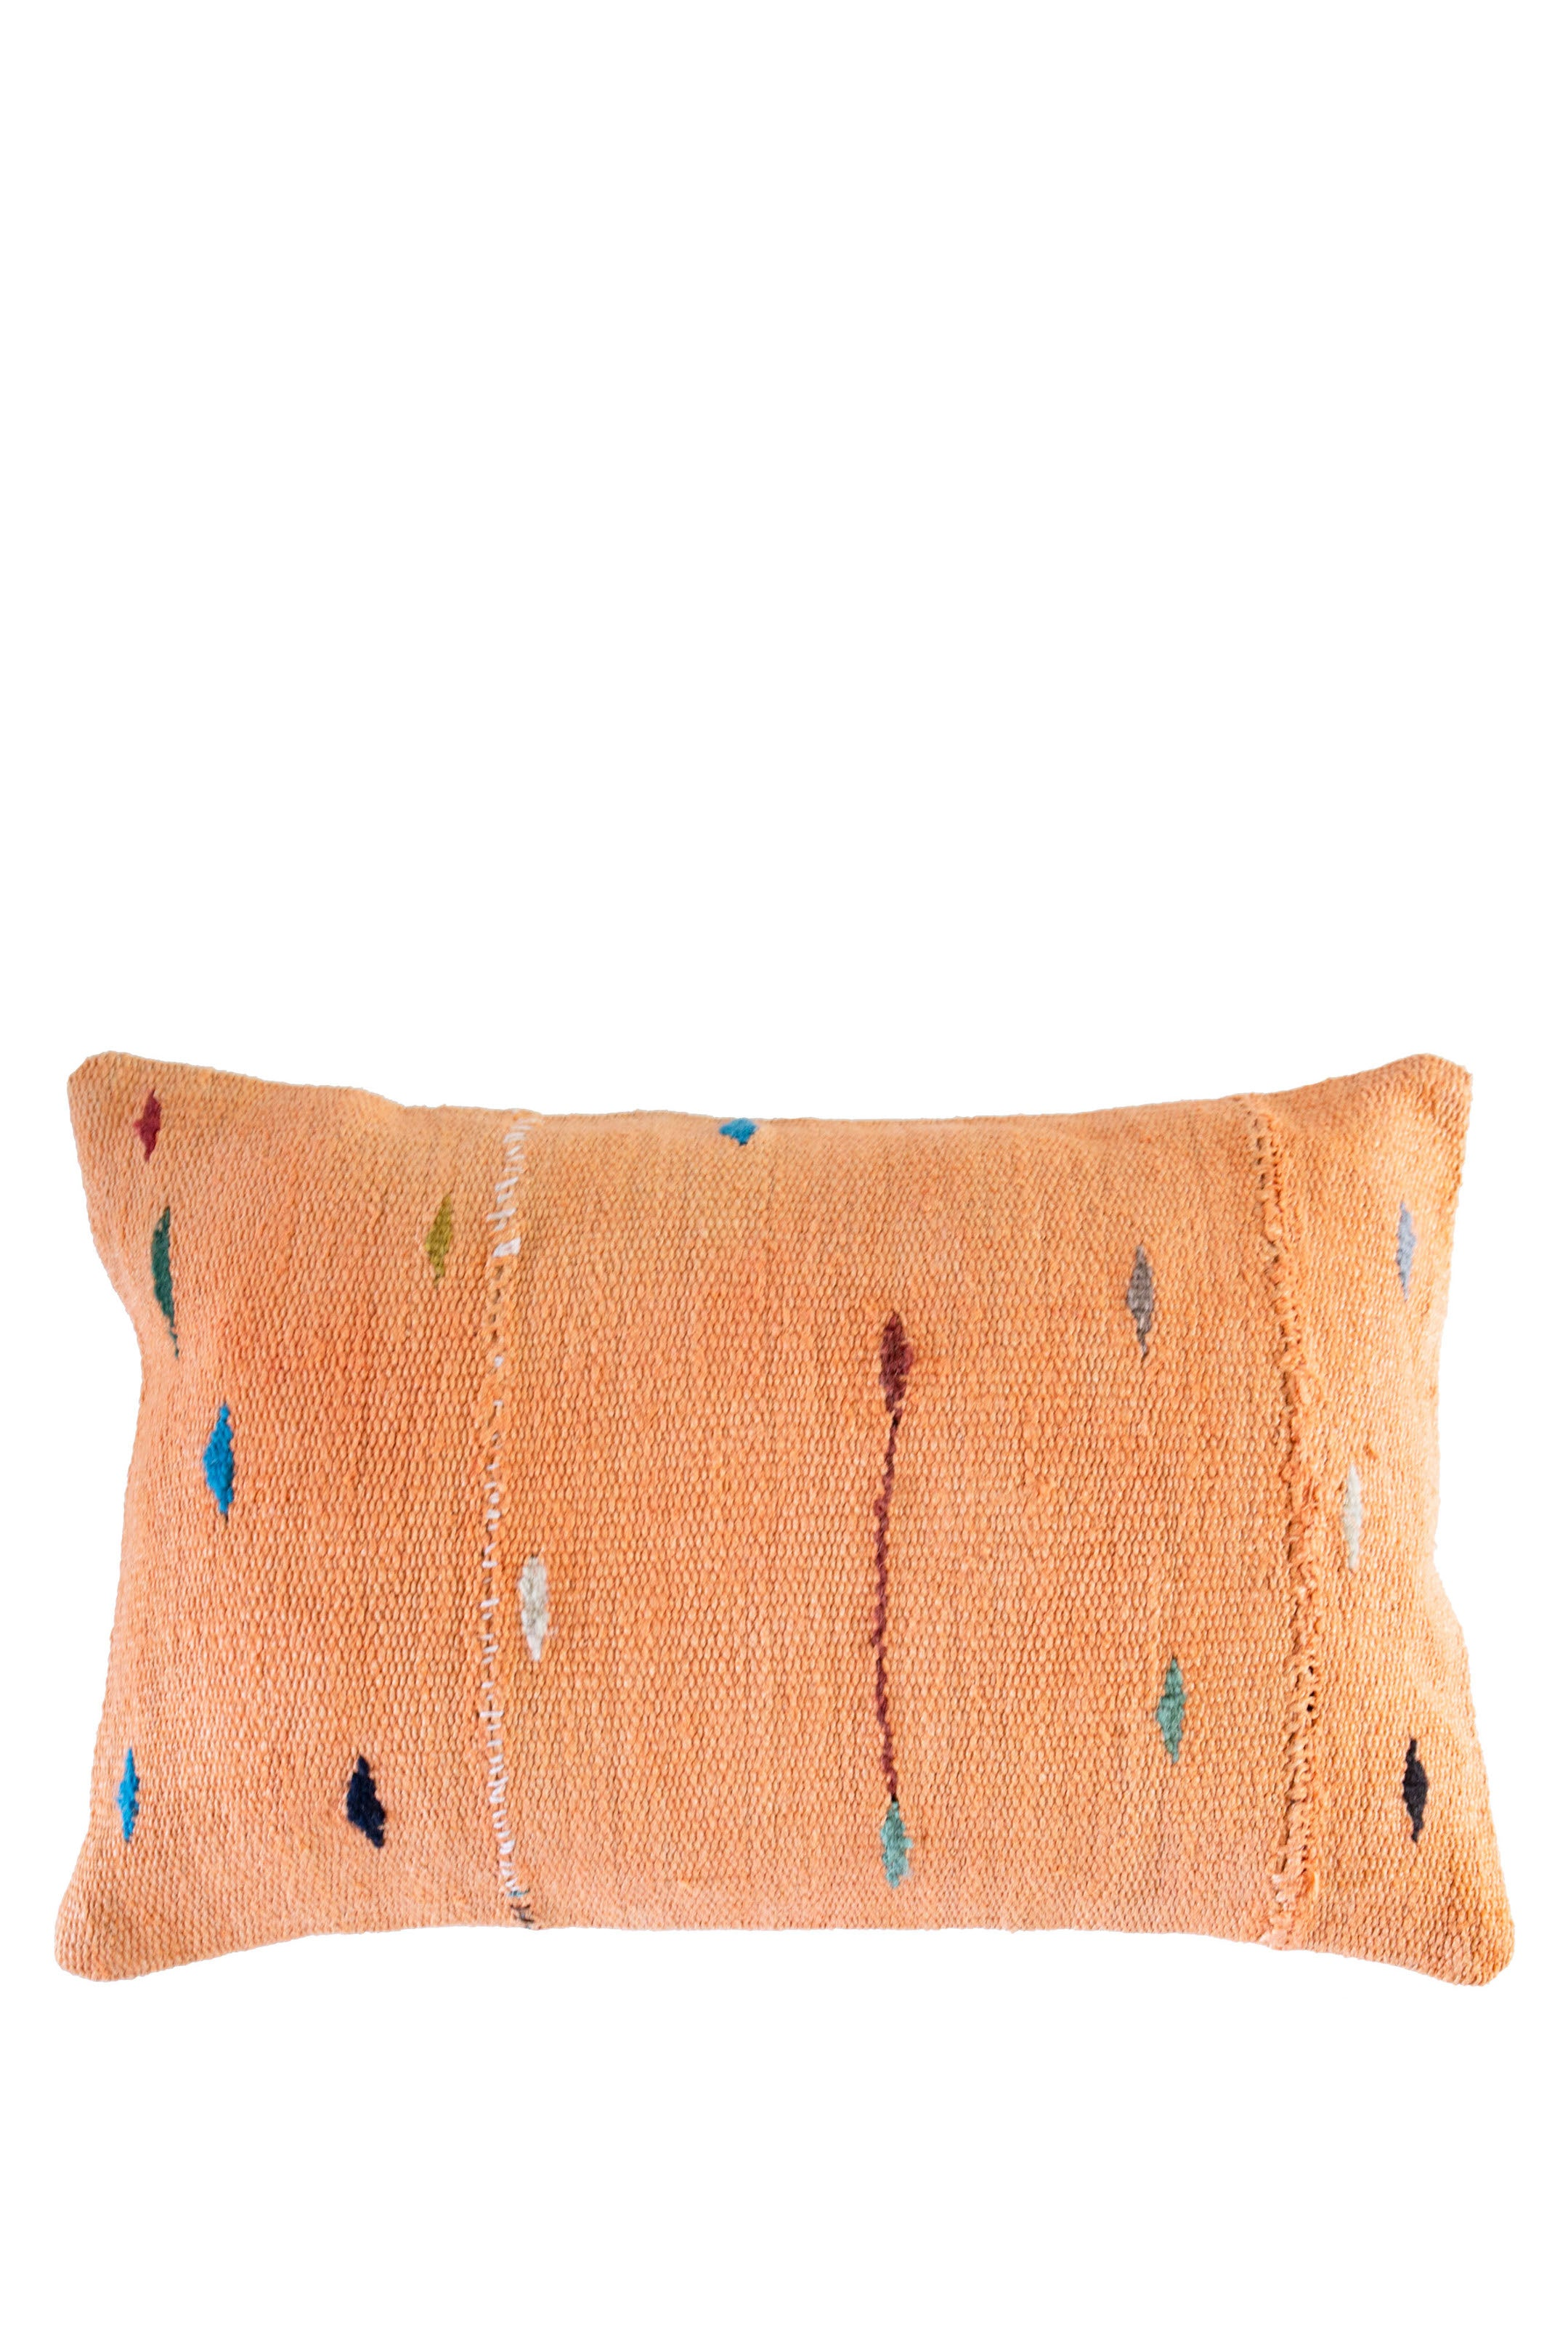 Royals Turkish Kilim Cushion